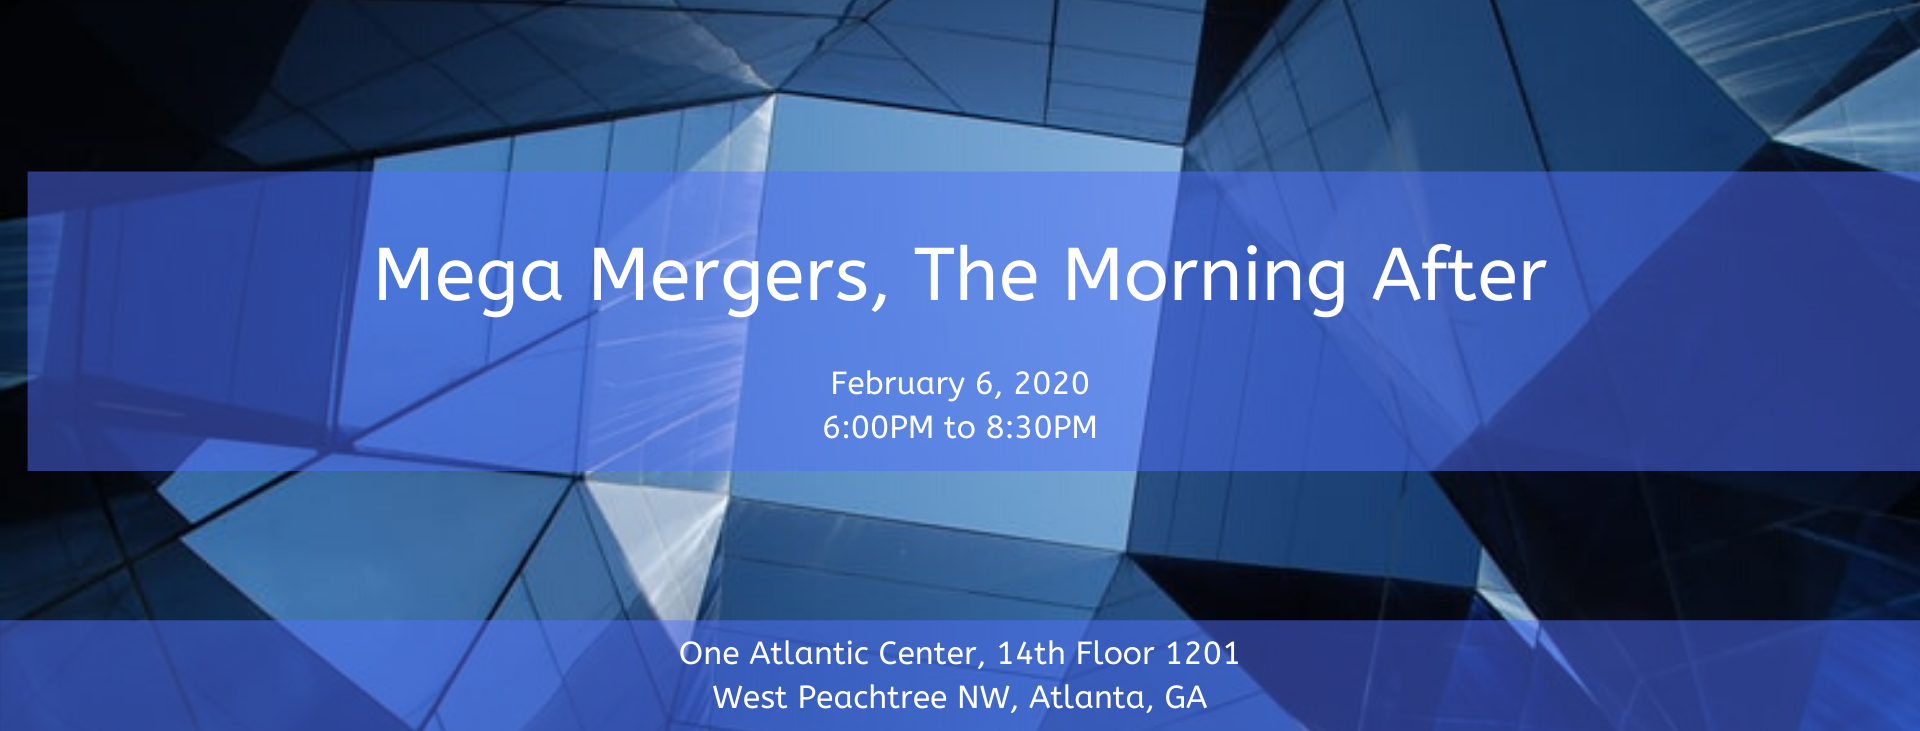 Mega Mergers The Morning After 3